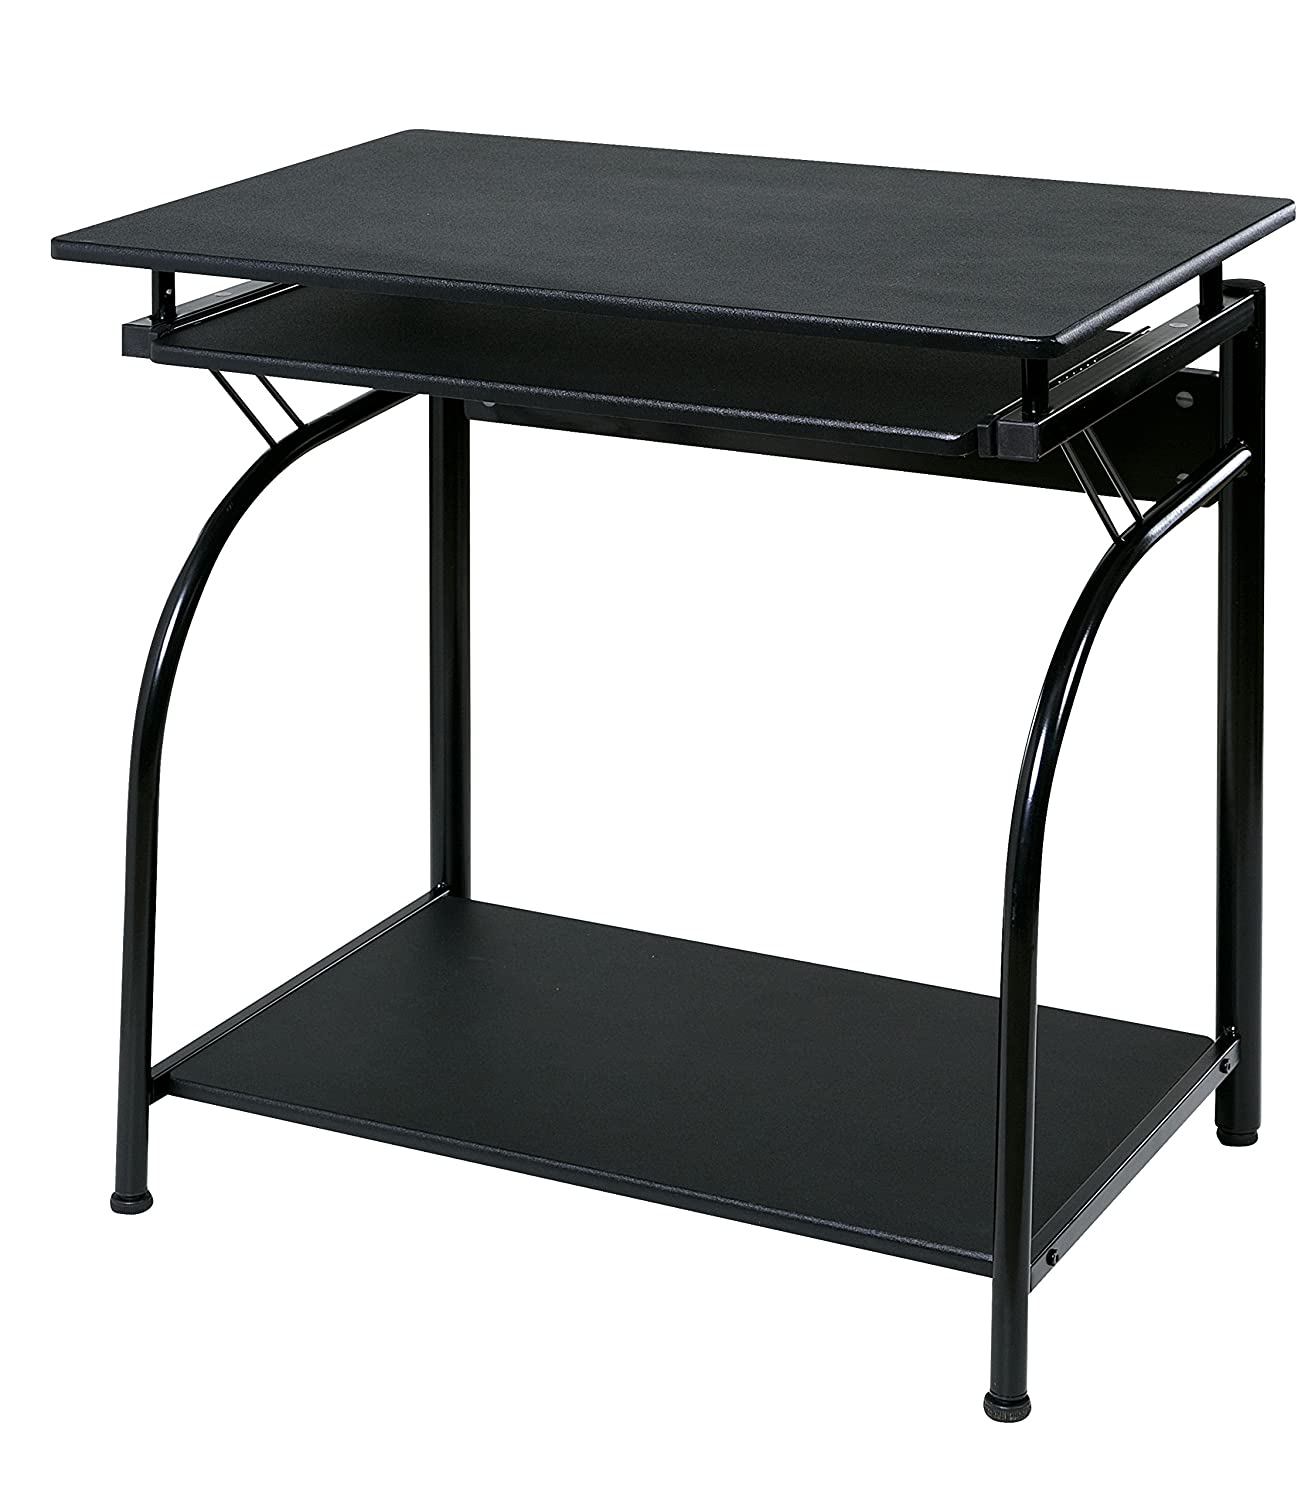 Comfort Products Stanton Computer Desk with Pullout Keyboard Tray 50-1001